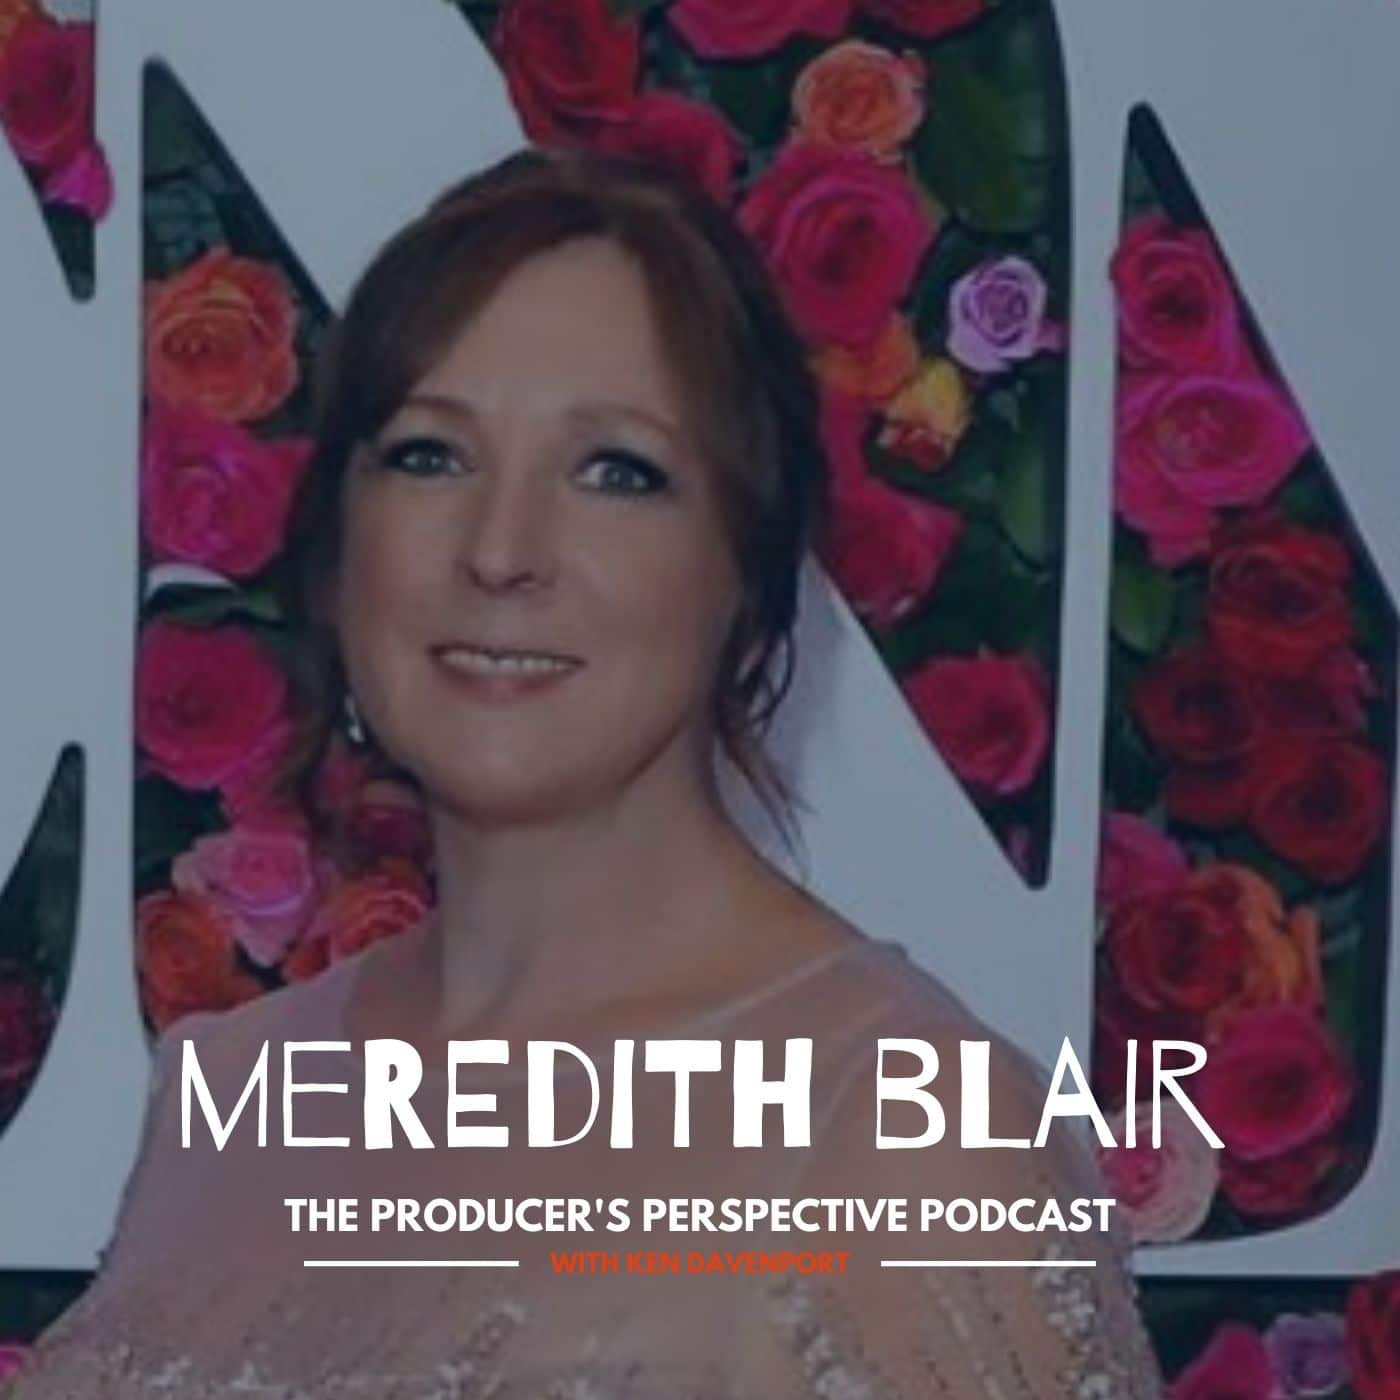 Ken Davenport's The Producer's Perspective Podcast Episode 69 - Meredith Blair